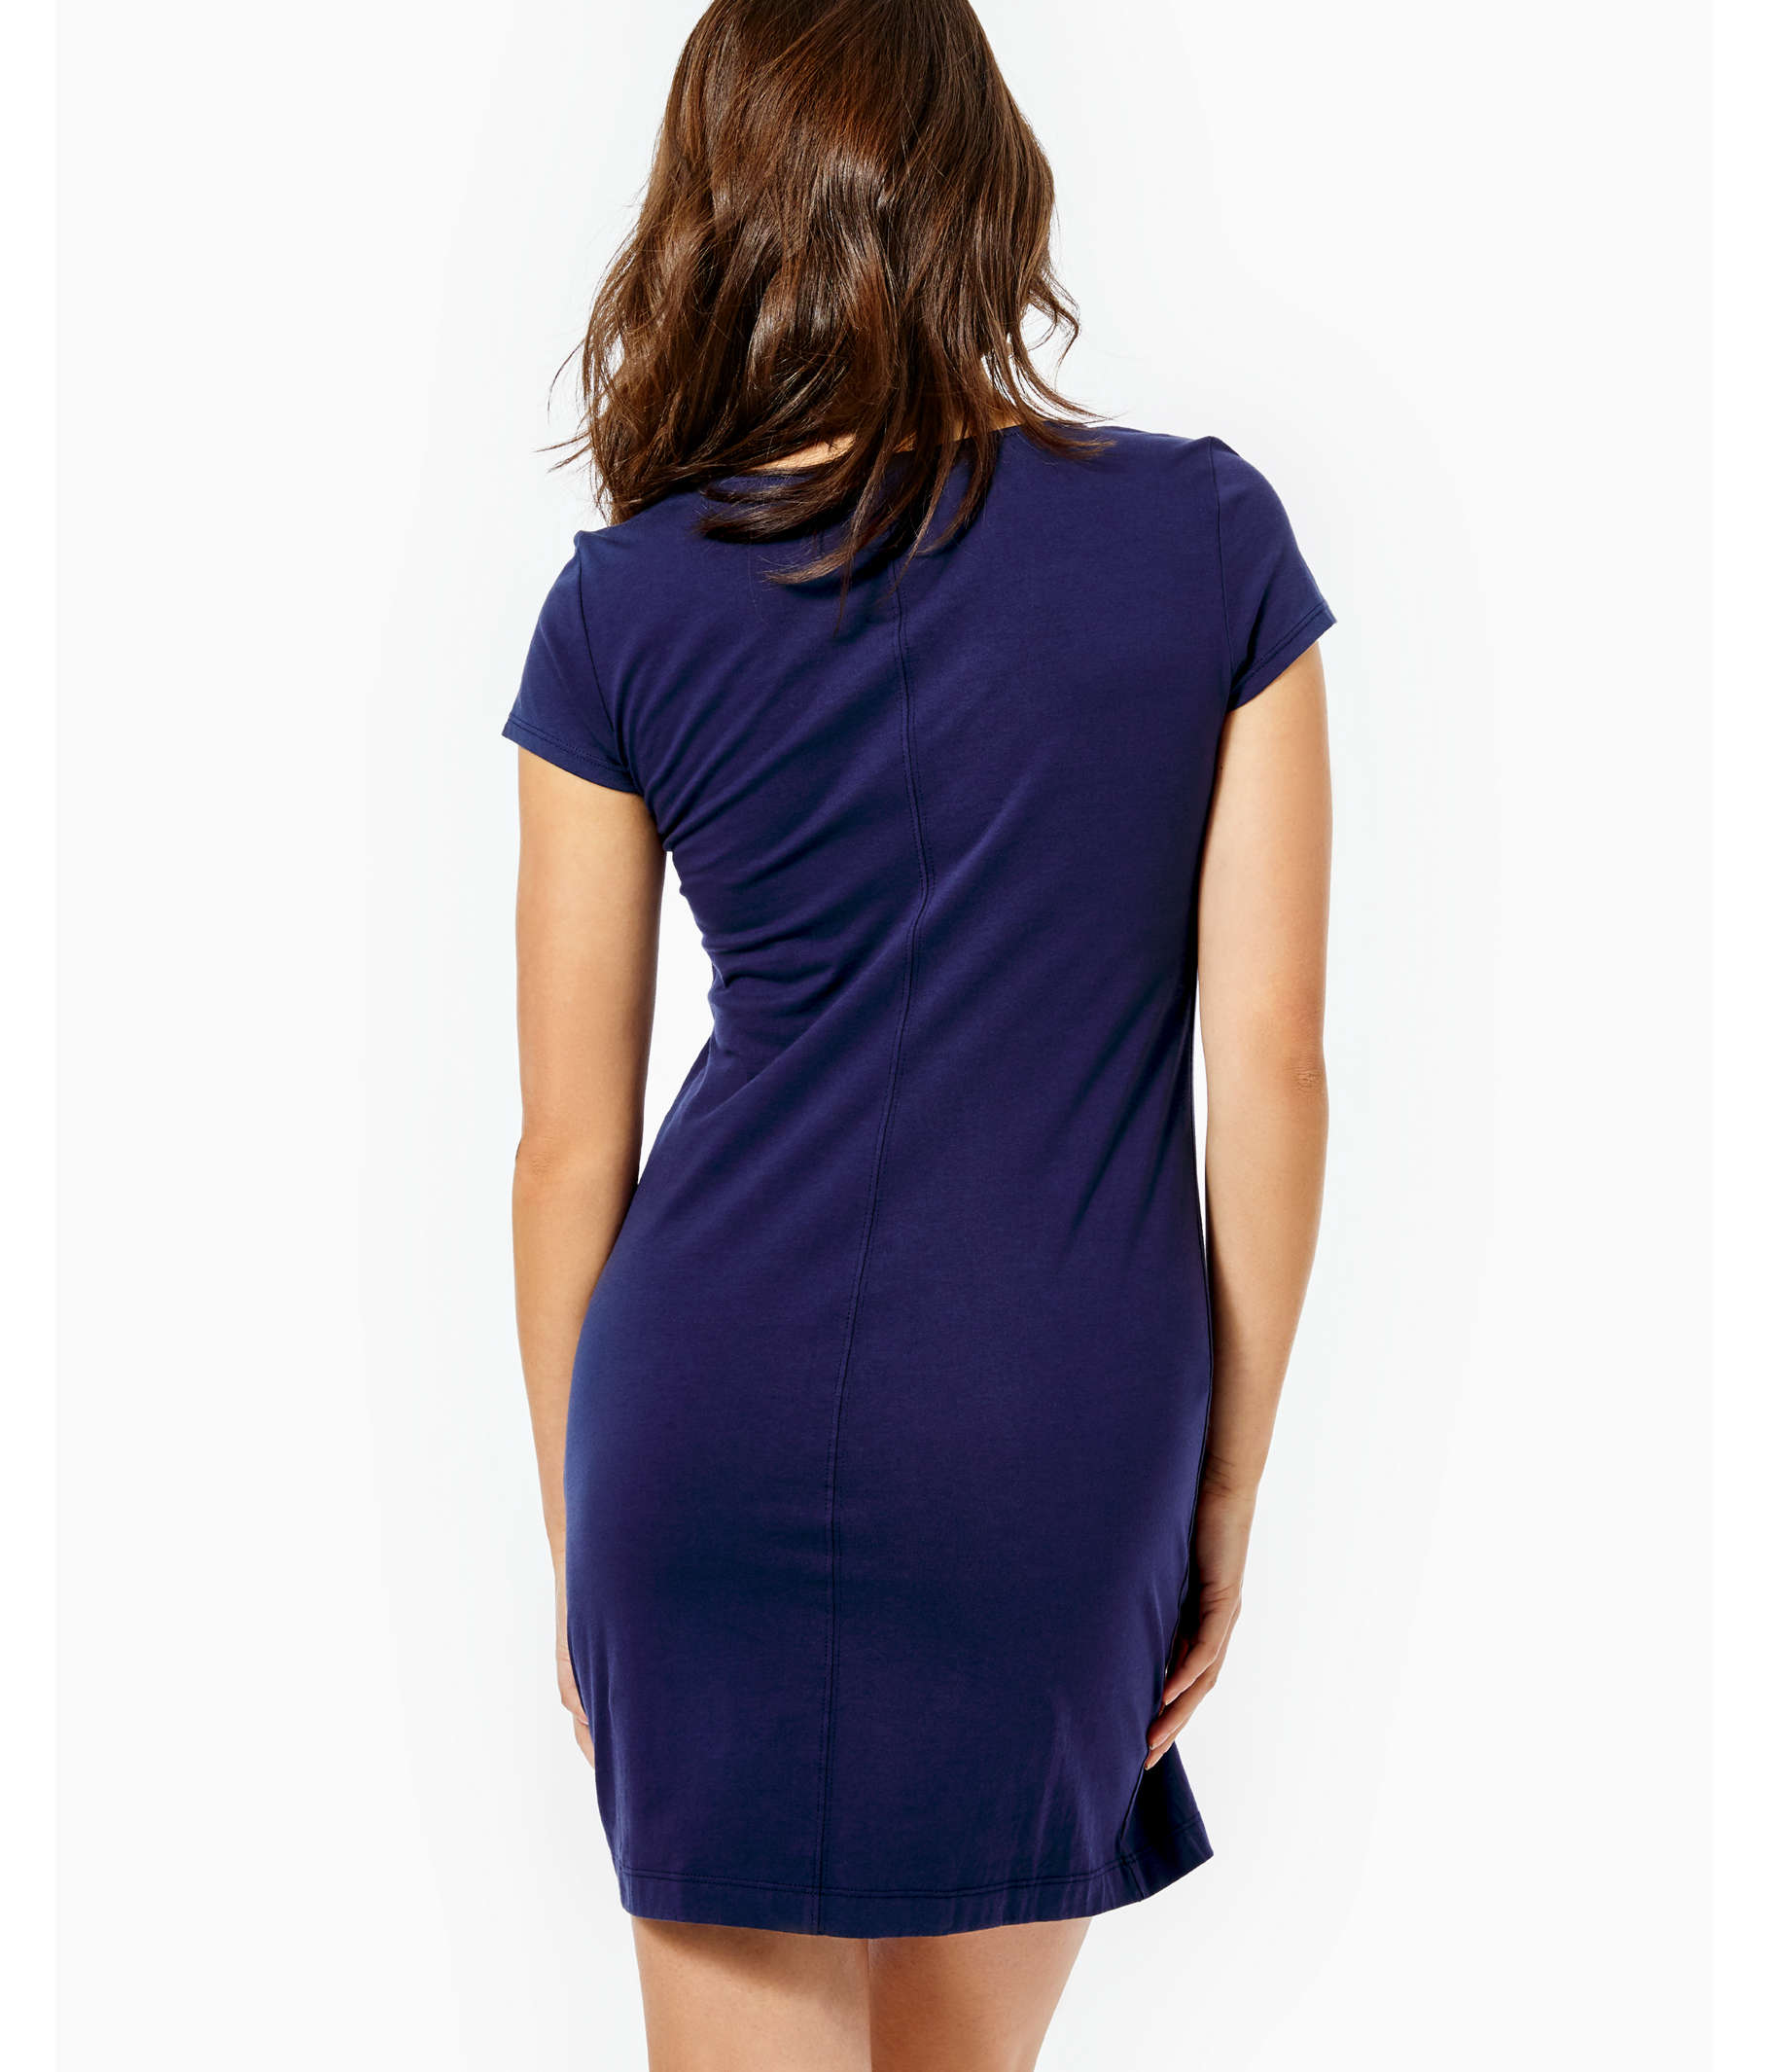 0bf02754ac10 ... Brewster T-Shirt Dress, True Navy, large ...